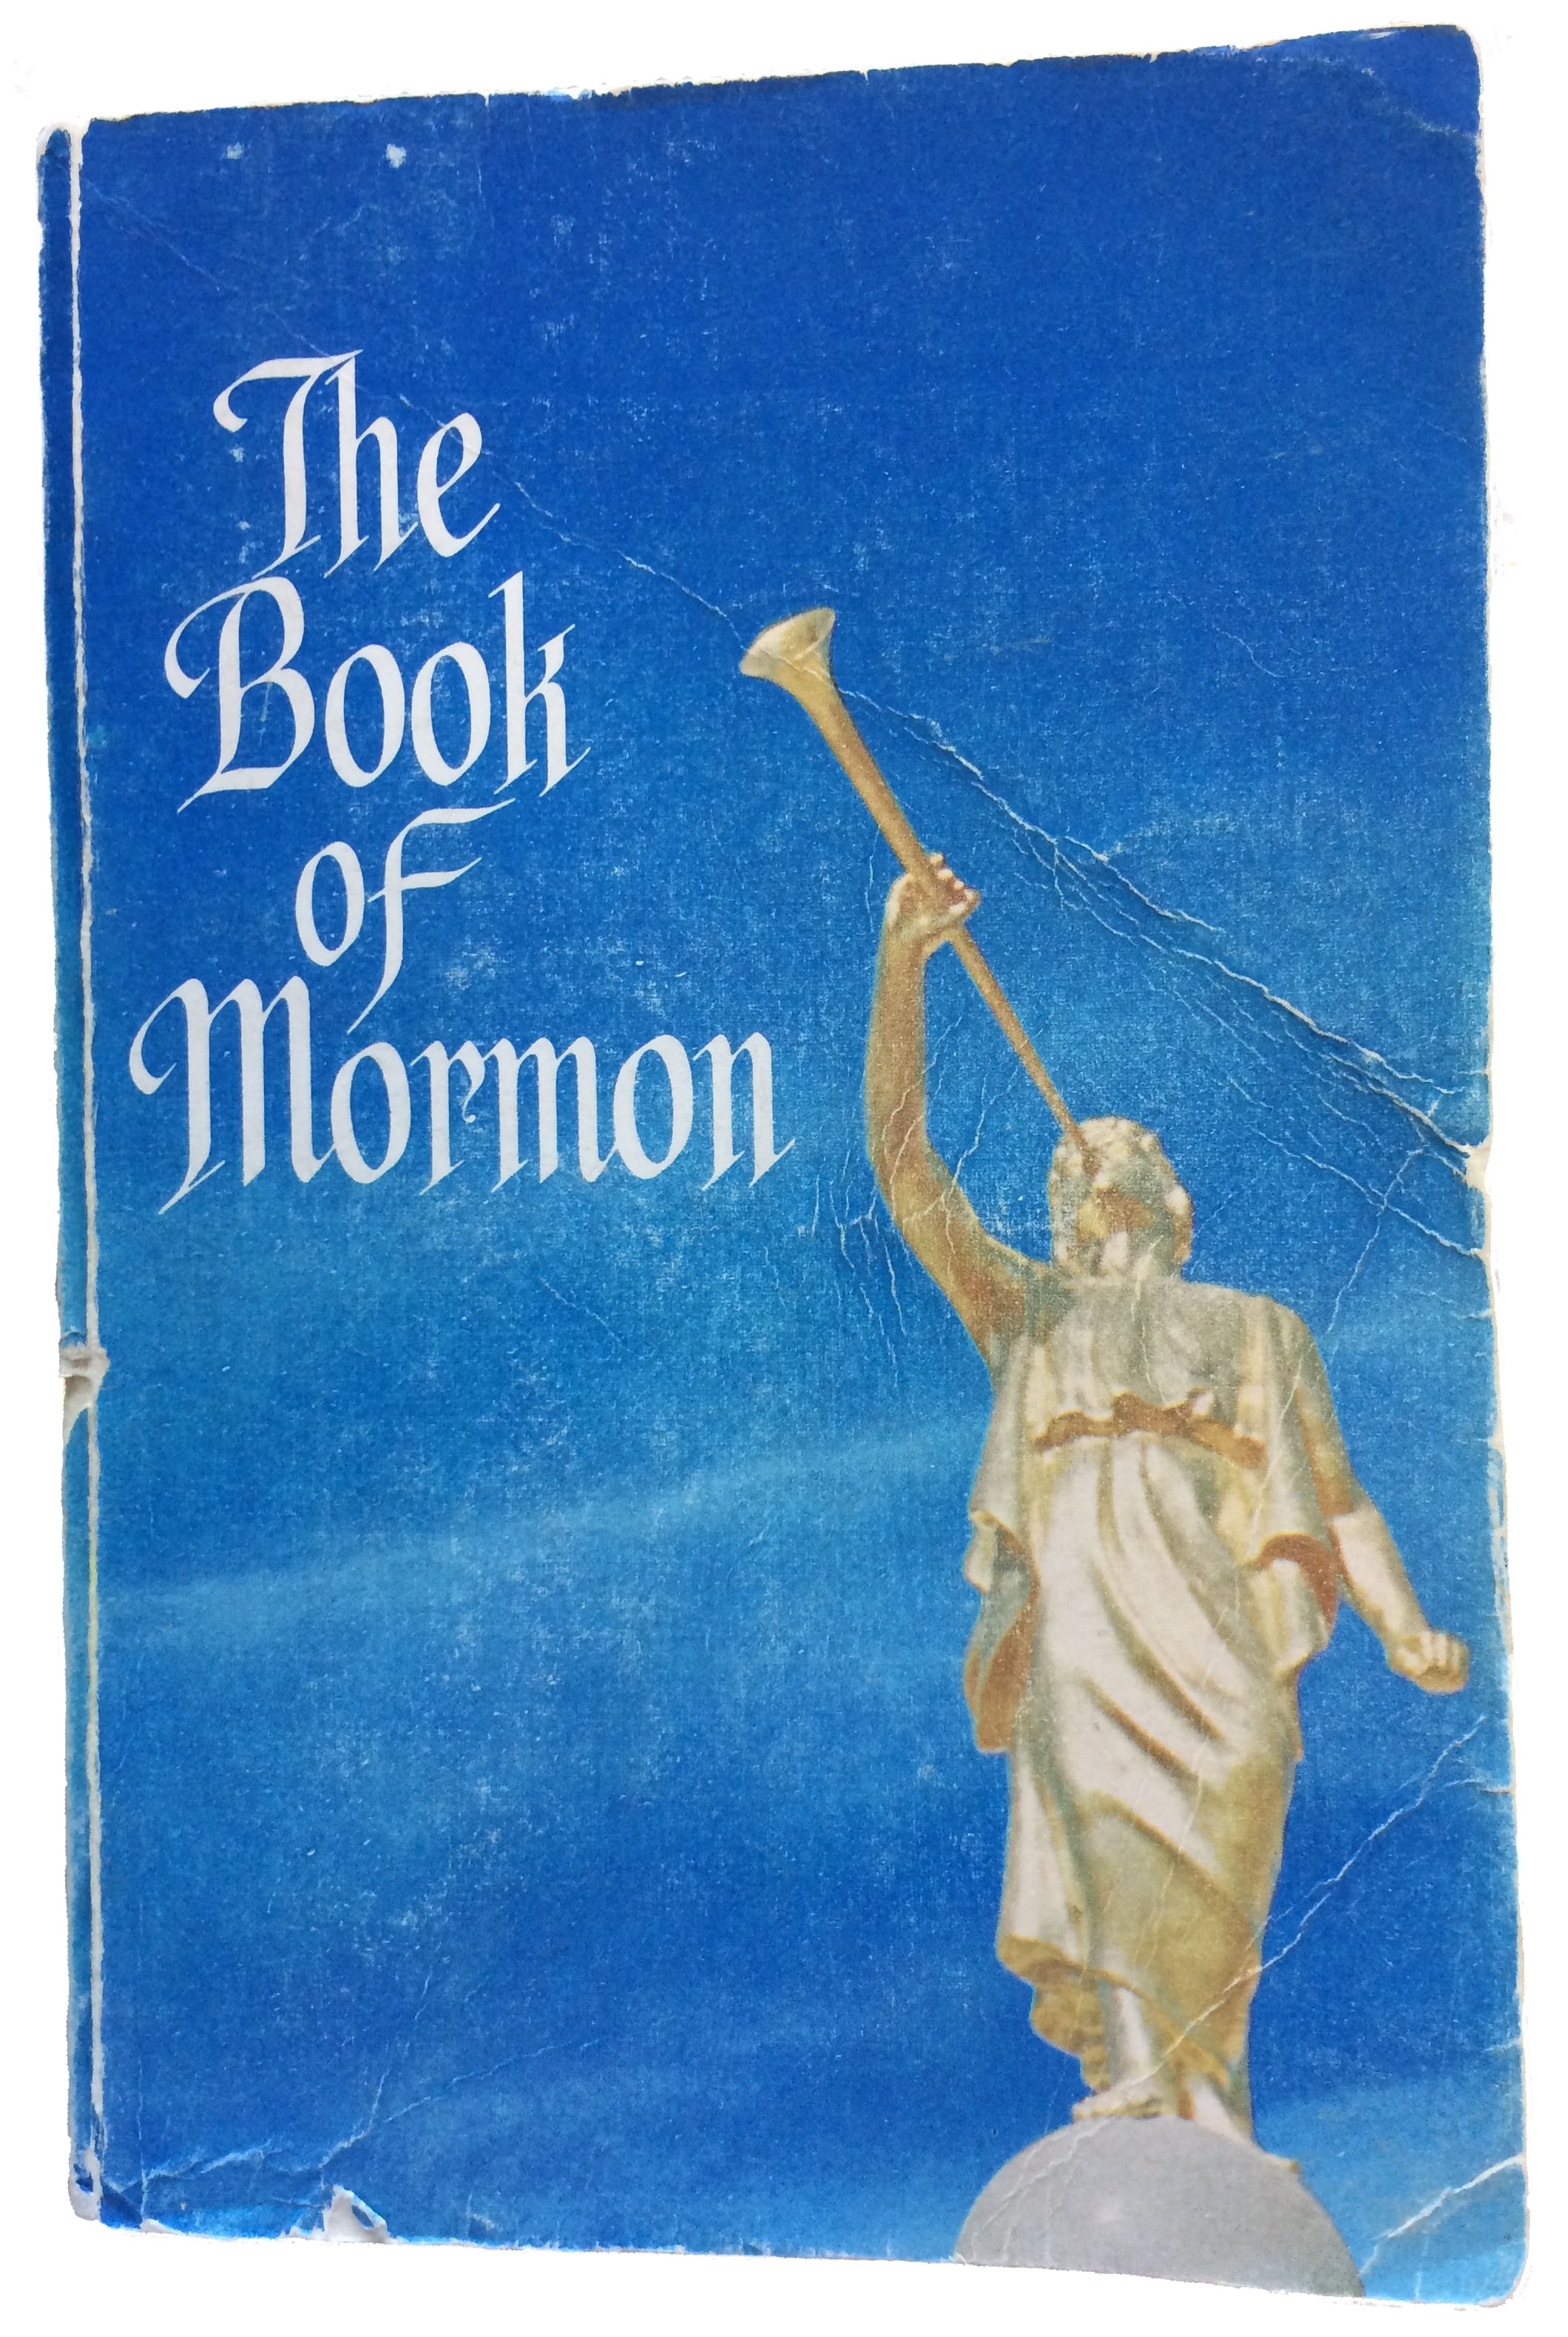 This copy of the Book of Mormon was donated to the Church in 1989 with forged annotations purportedly made by Elvis Presley.